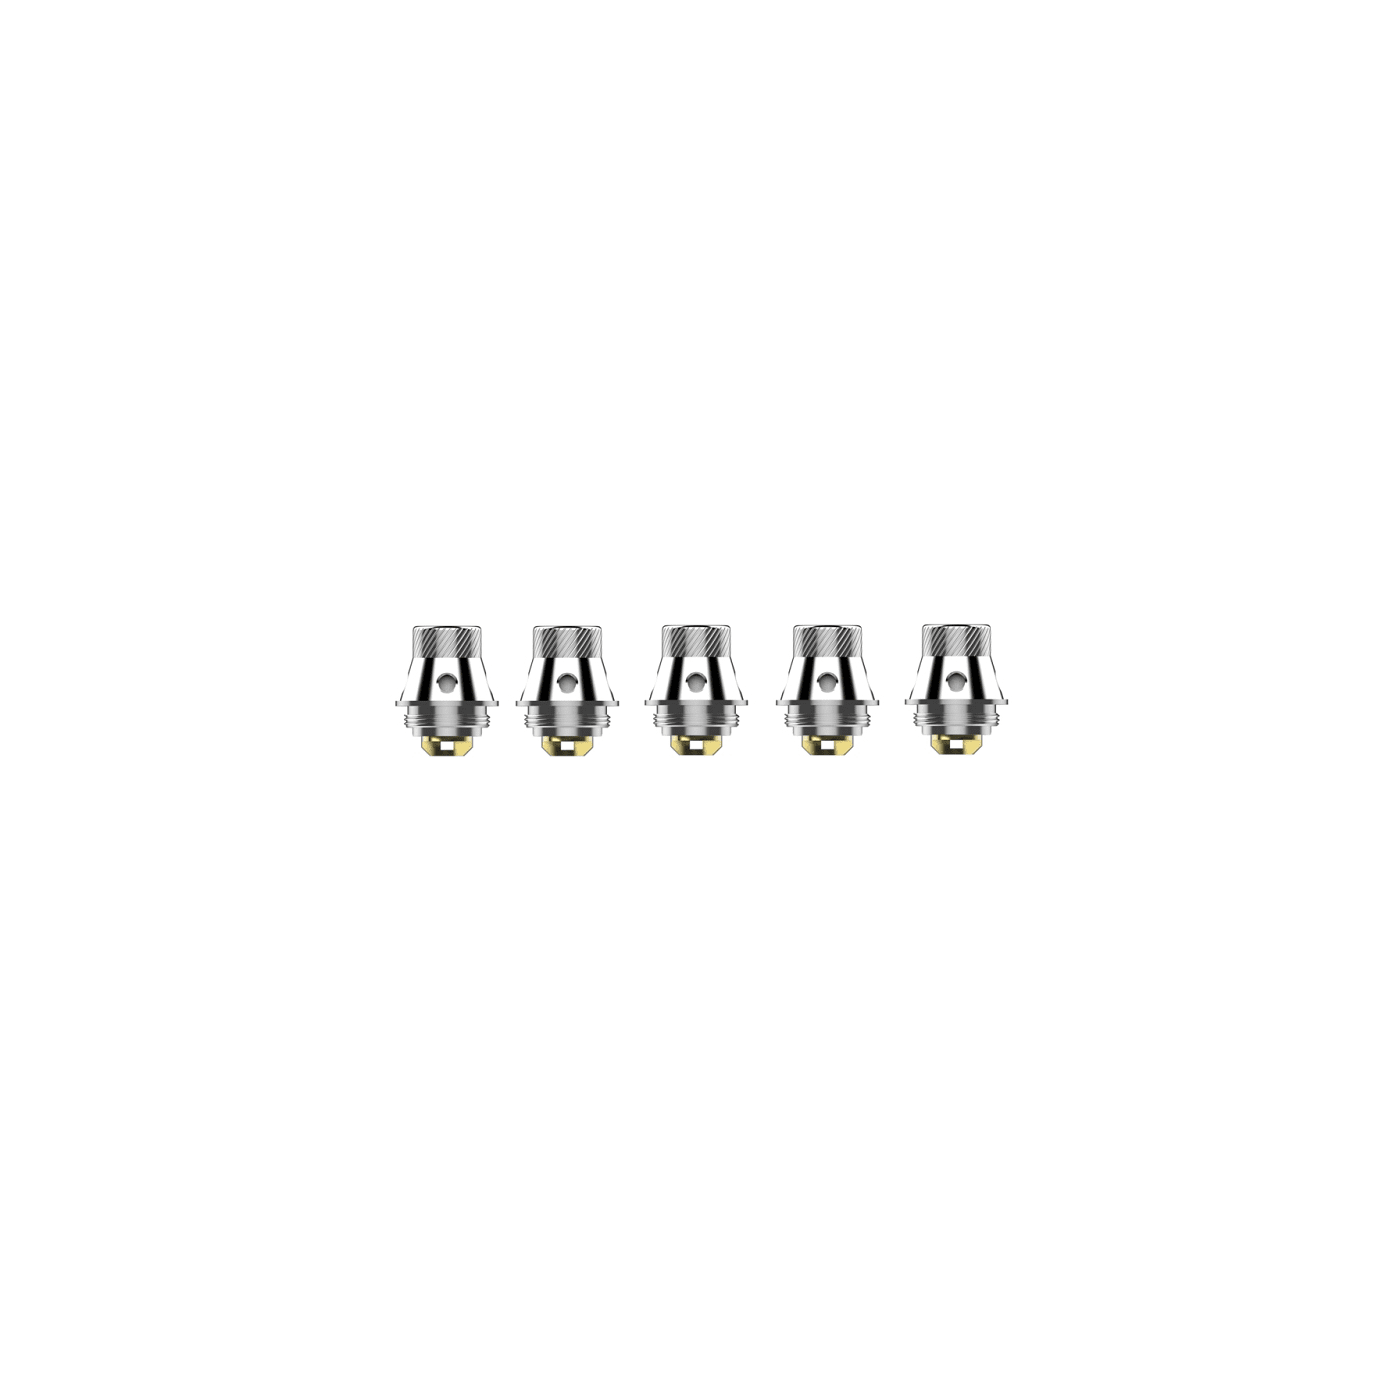 Kanger Auro ST Replacement Coil - 5 pack